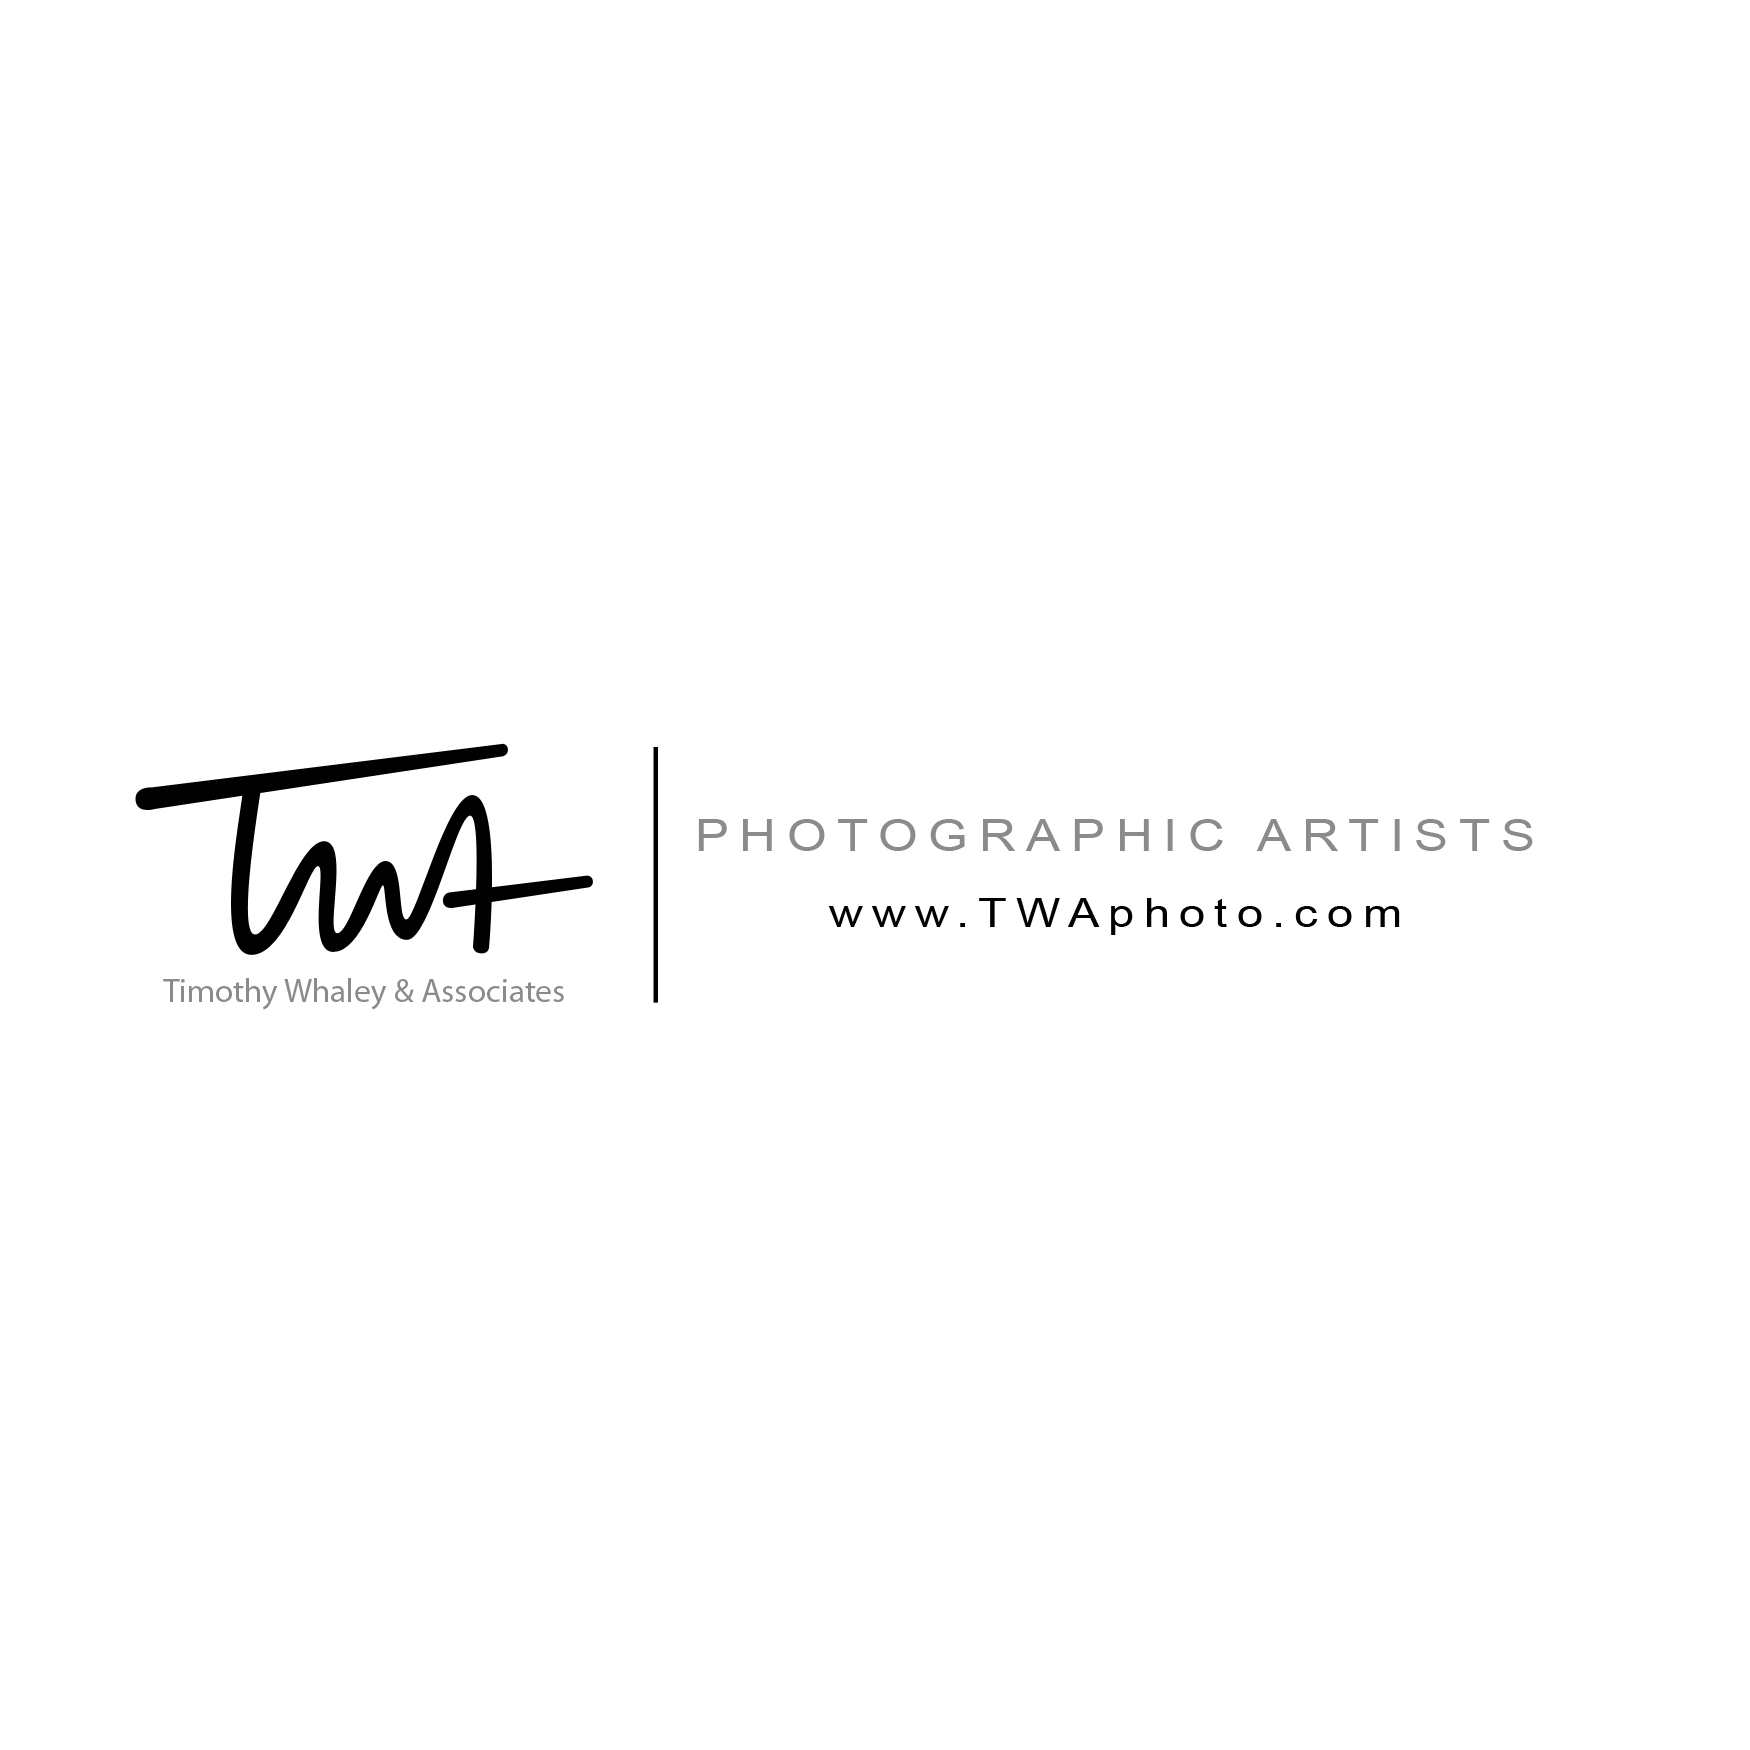 Timothy Whaley & Associates Photographic Artists